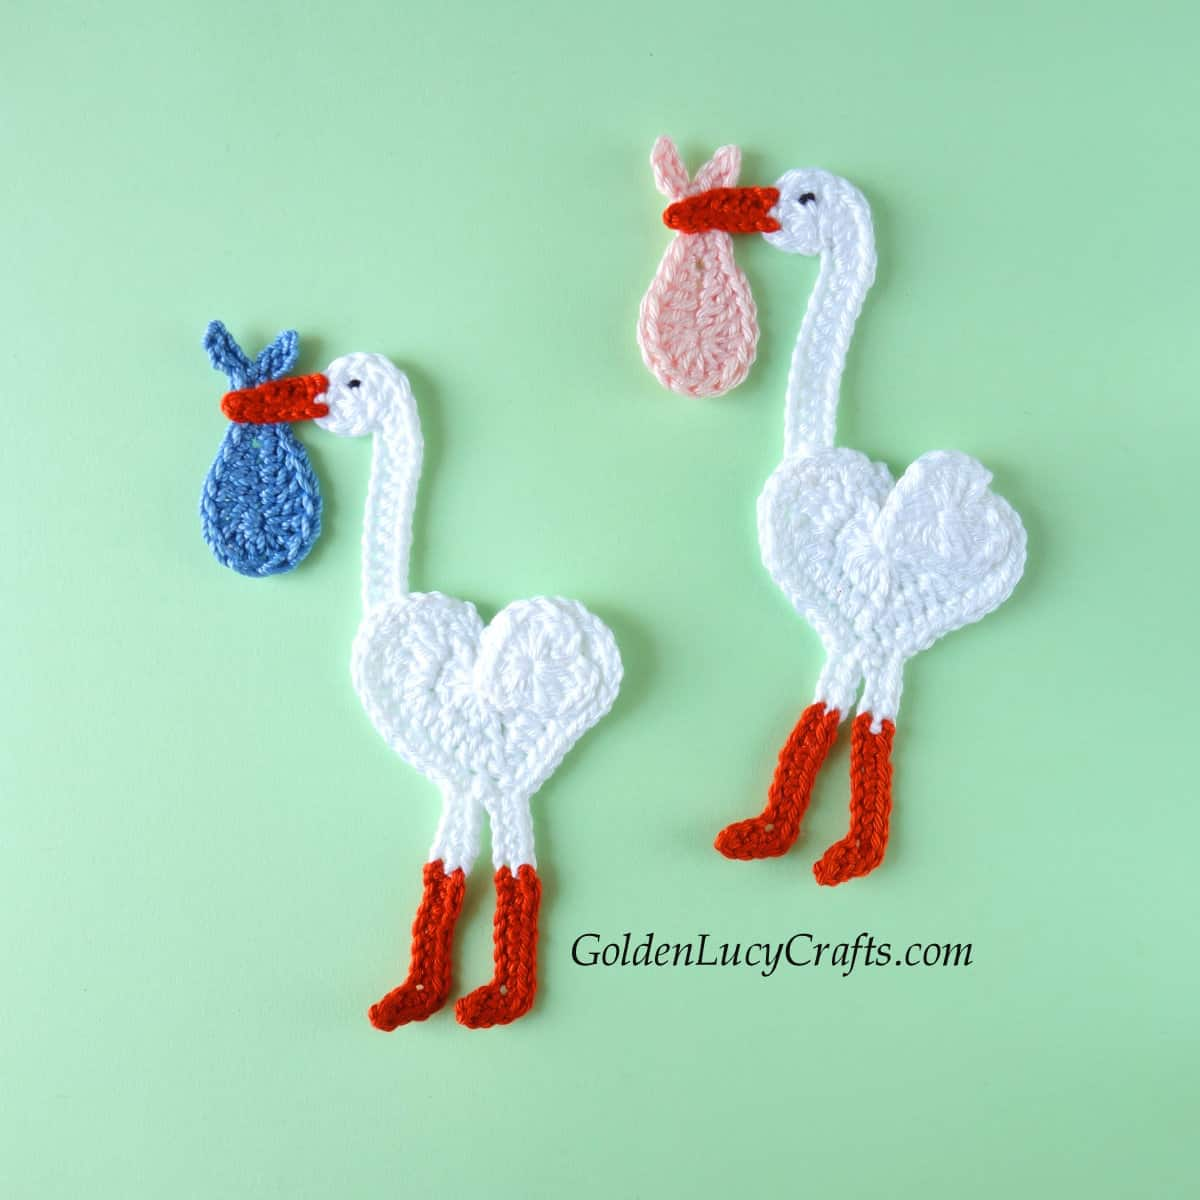 Two crocheted stork appliques.